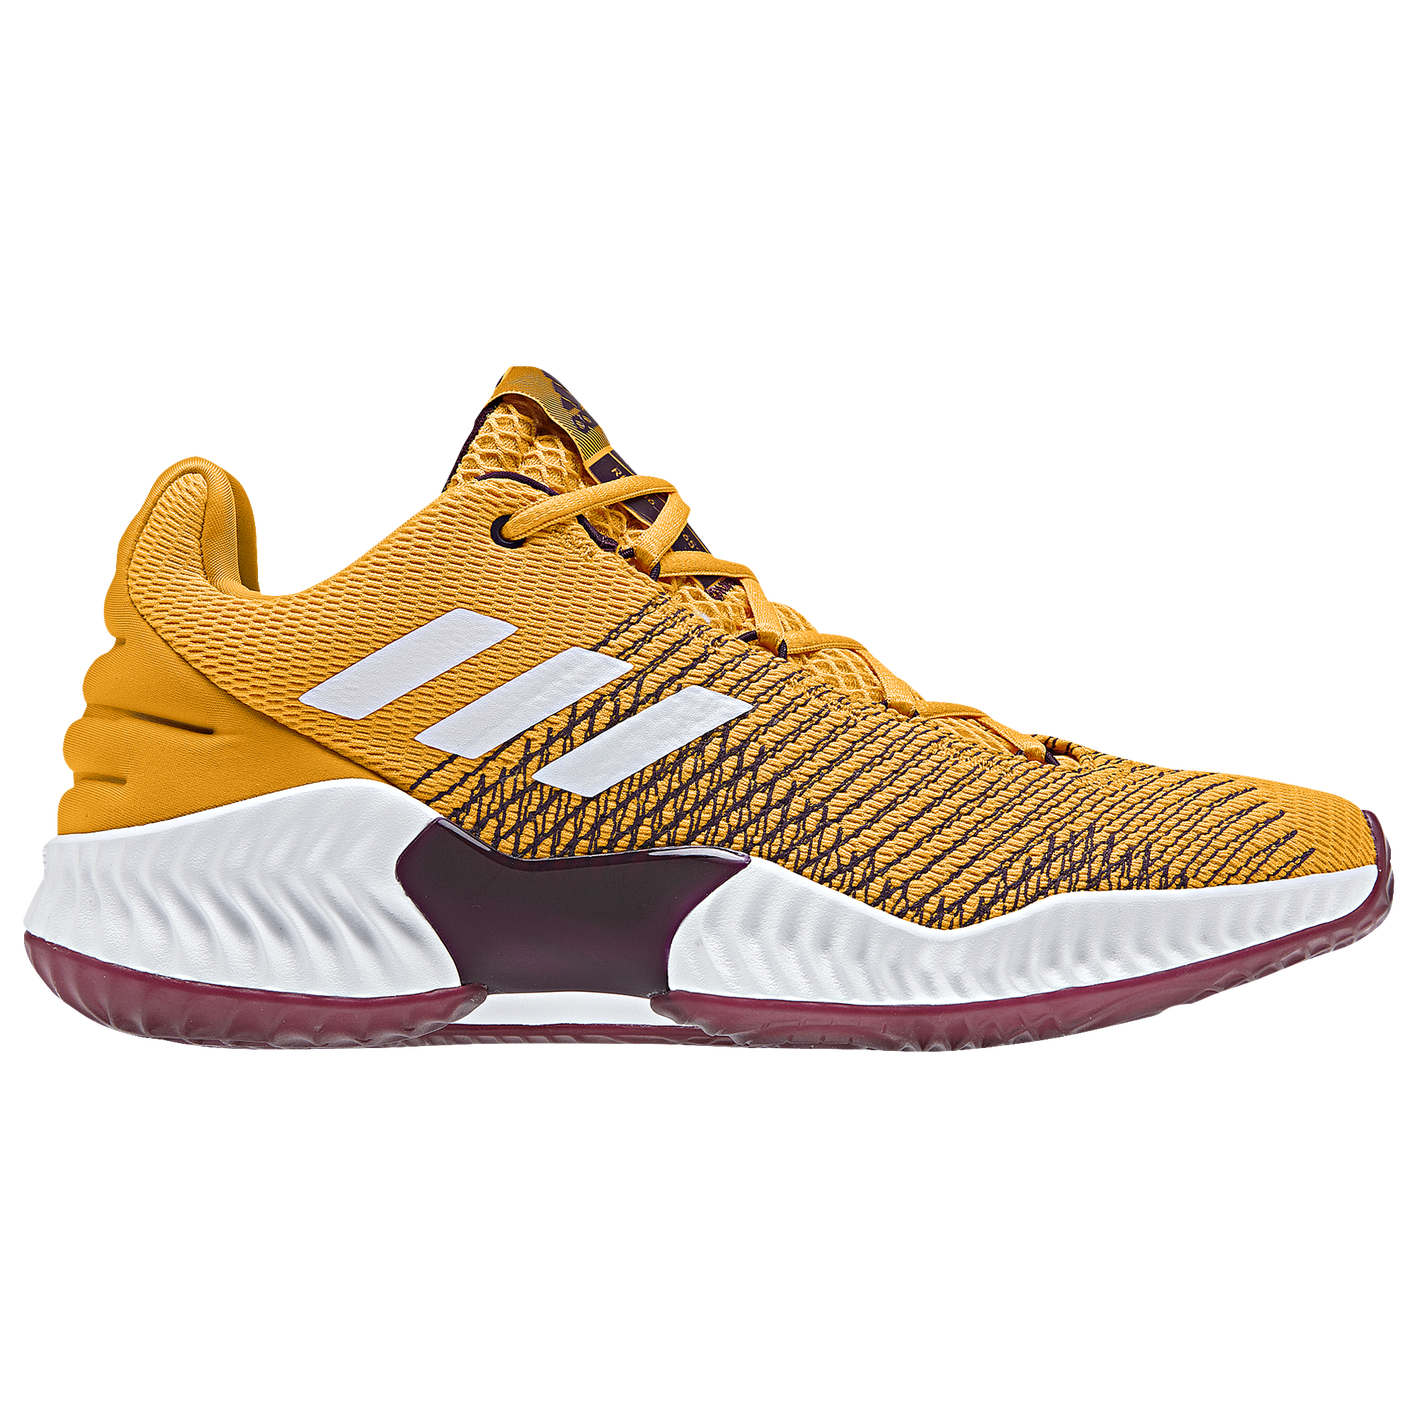 d76cfa4b25e adidas Pro Bounce Low 2018 - Men s - Basketball - Shoes - Gold White ...